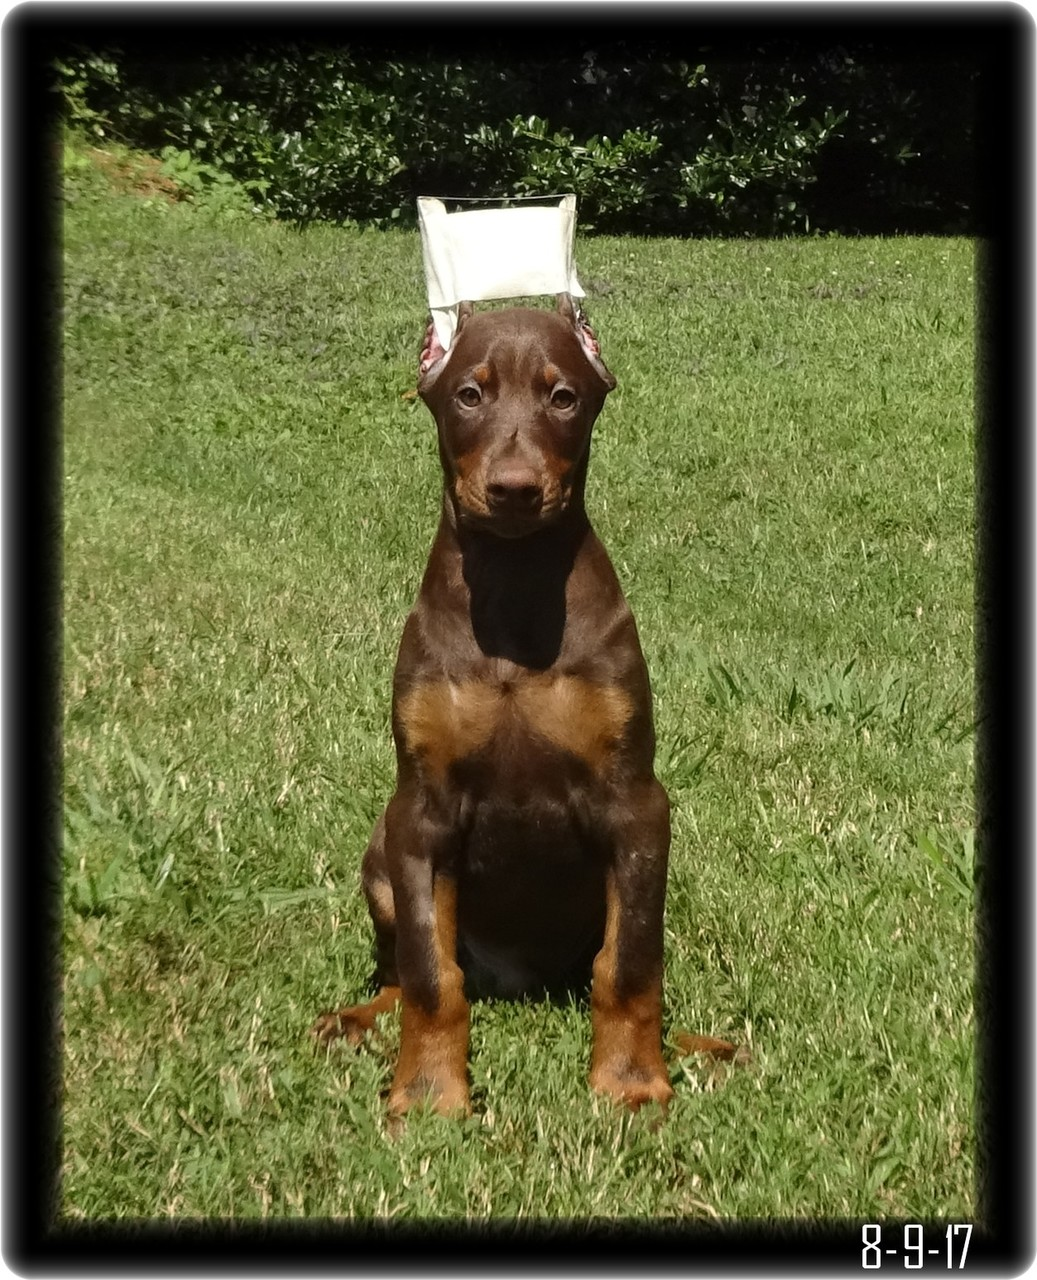 Red doberman puppy ten weeks old right after ear crop